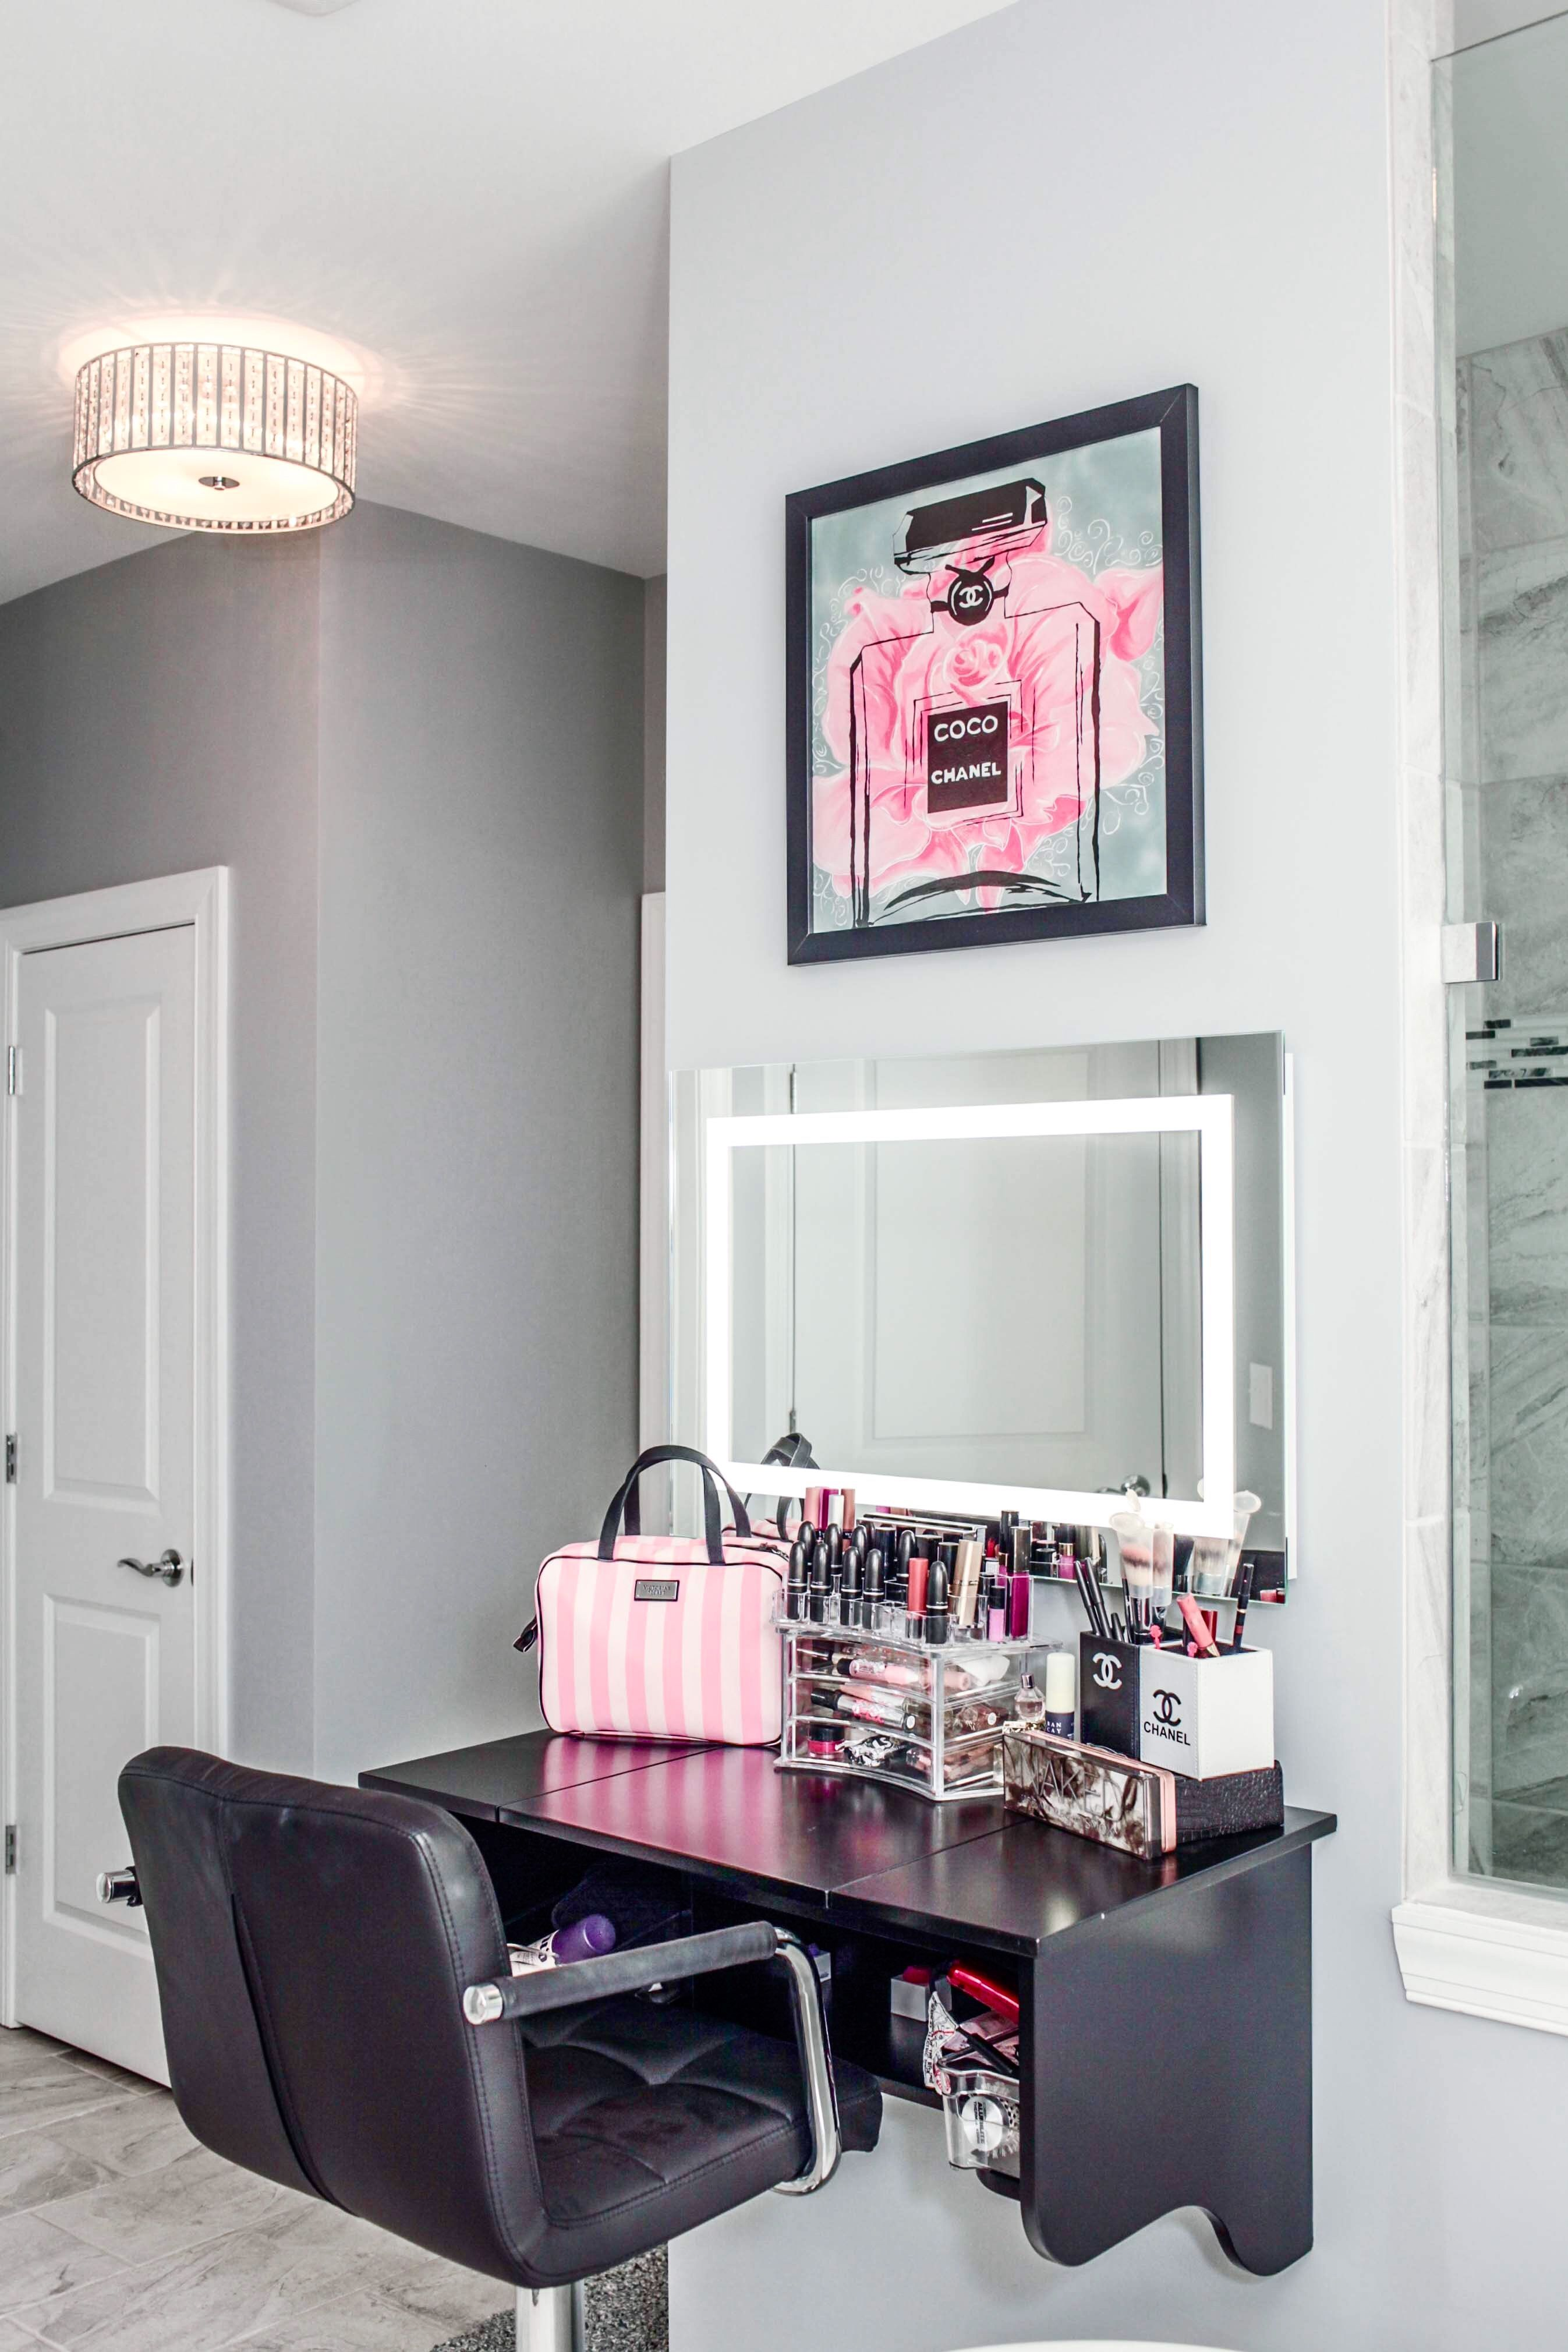 Designs Area Bathroom Small Space Makeup on makeup area in bedroom, makeup area ideas, makeup area in small bathrooms,